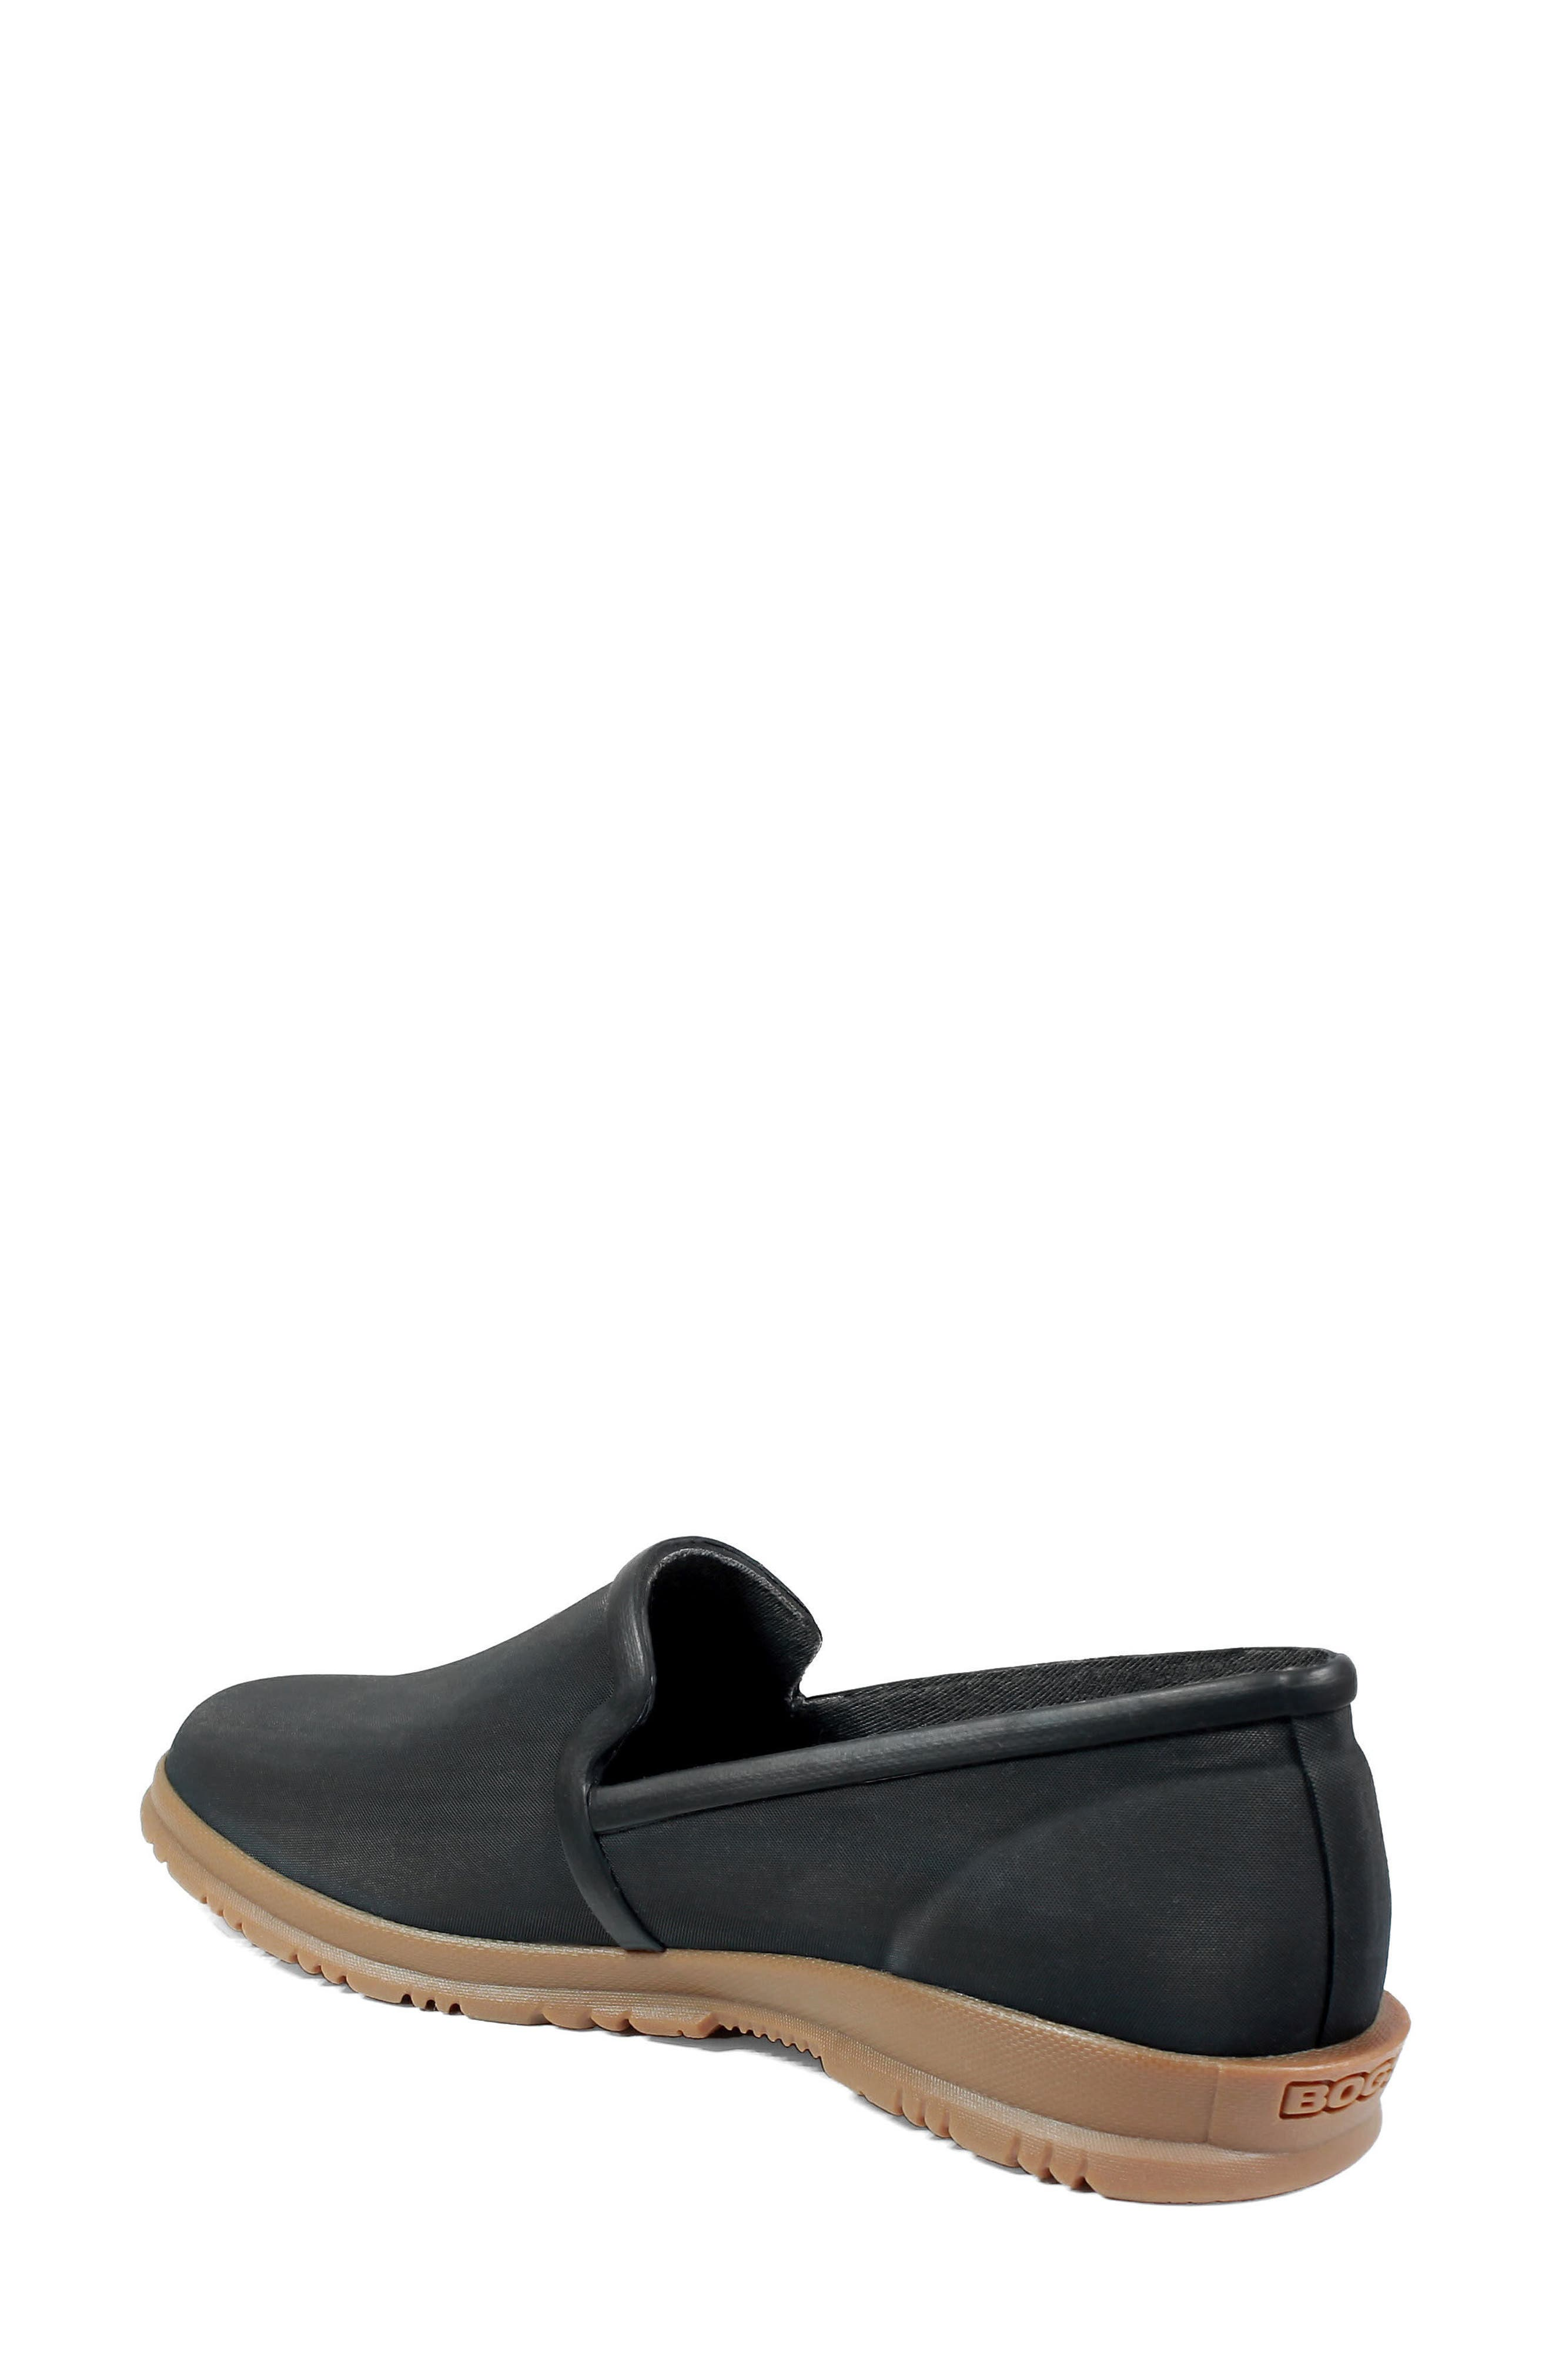 Sweetpea Waterproof Slip-On Sneaker,                             Alternate thumbnail 2, color,                             Black Fabric